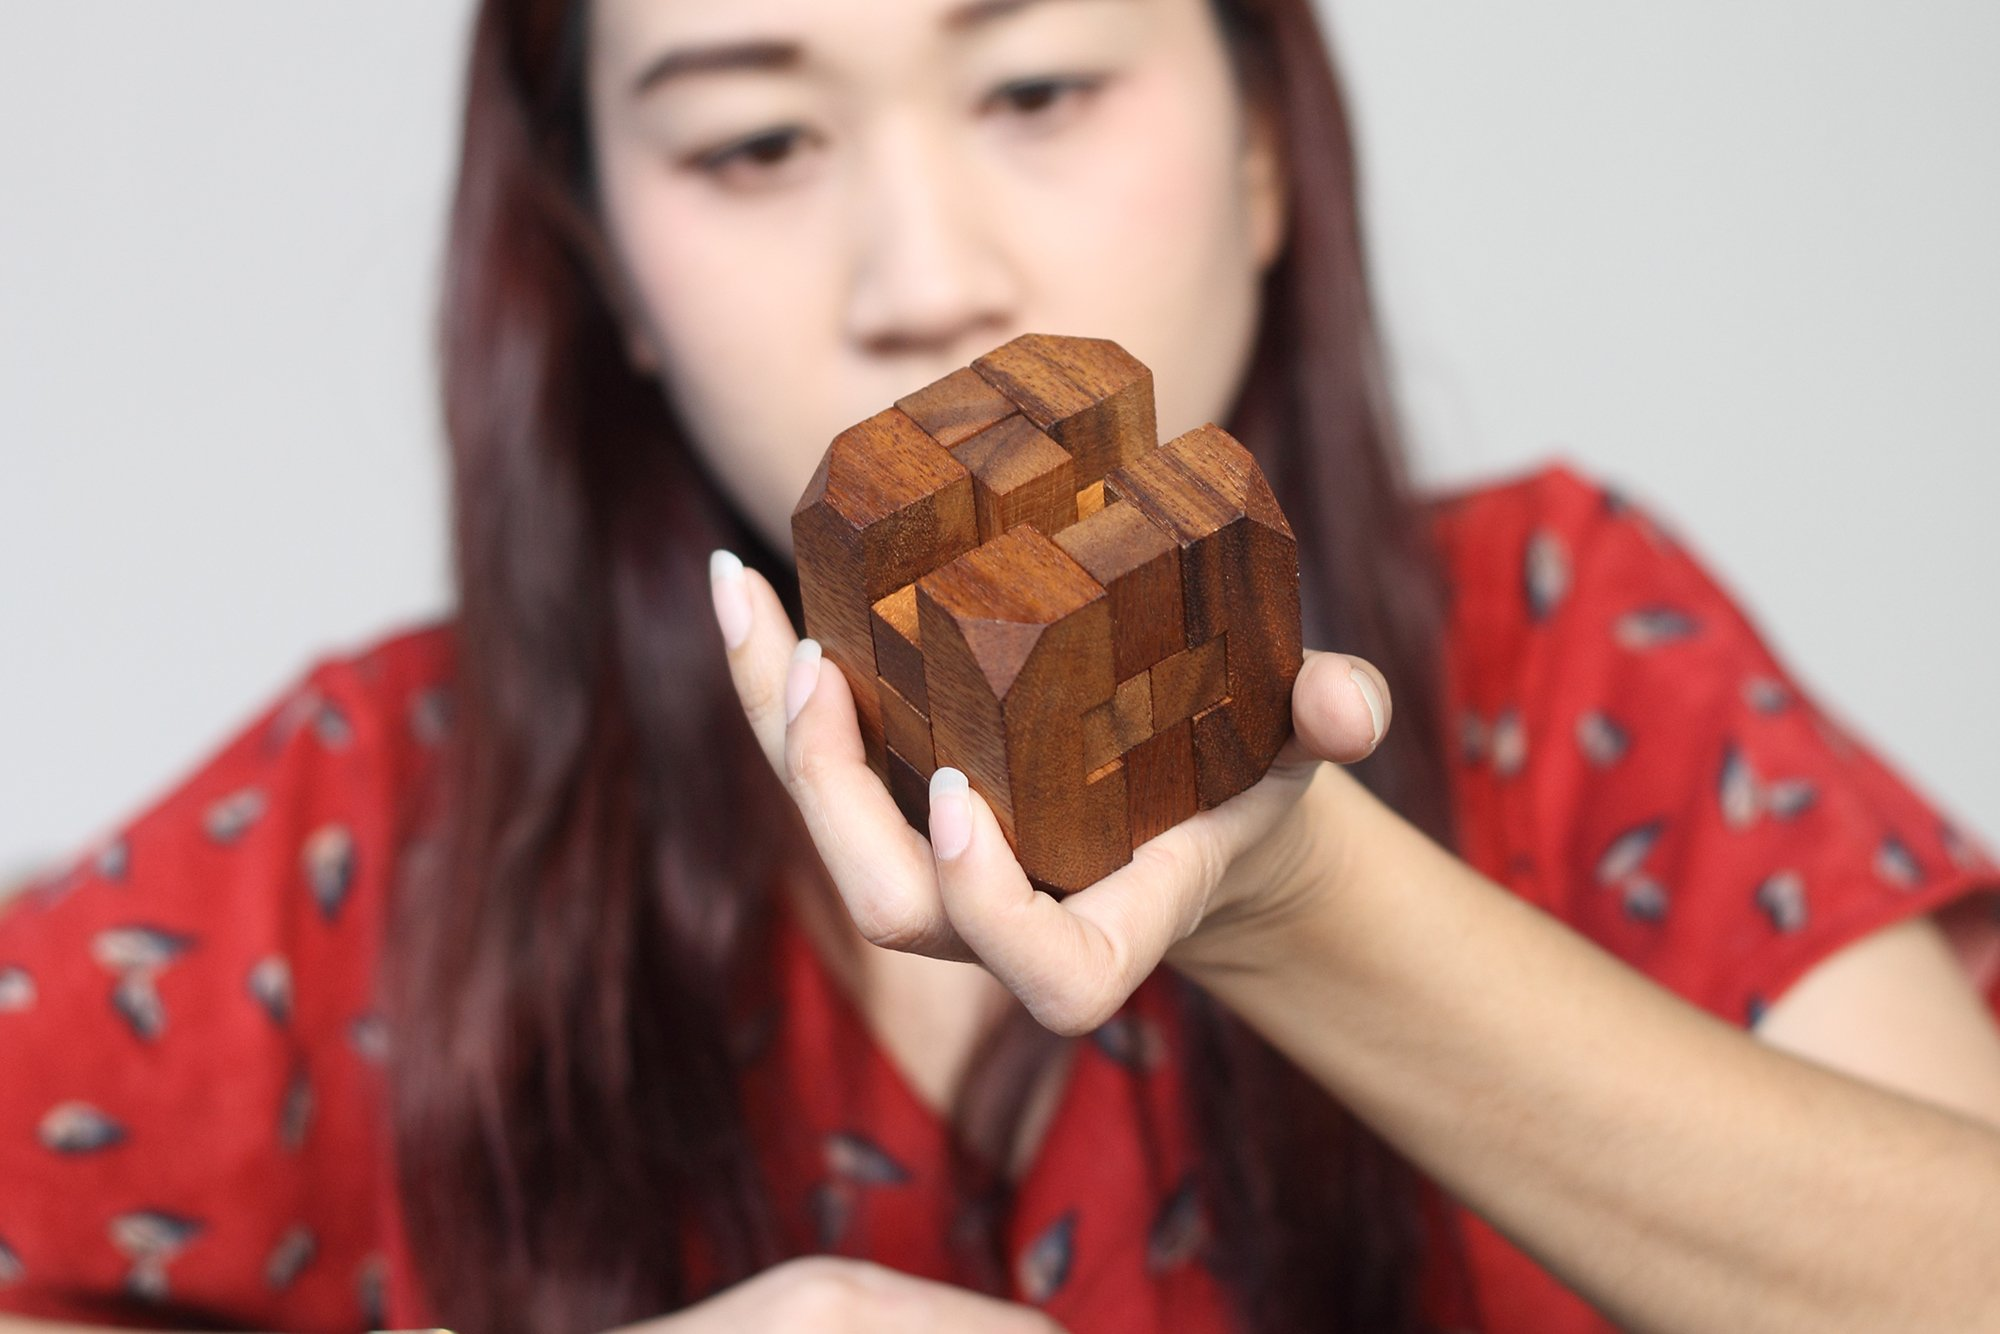 Hidden Passage: Handmade & Organic 3D Brain Teaser Wooden Puzzle for Adults from SiamMandalay with SM Gift Box(Pictured)